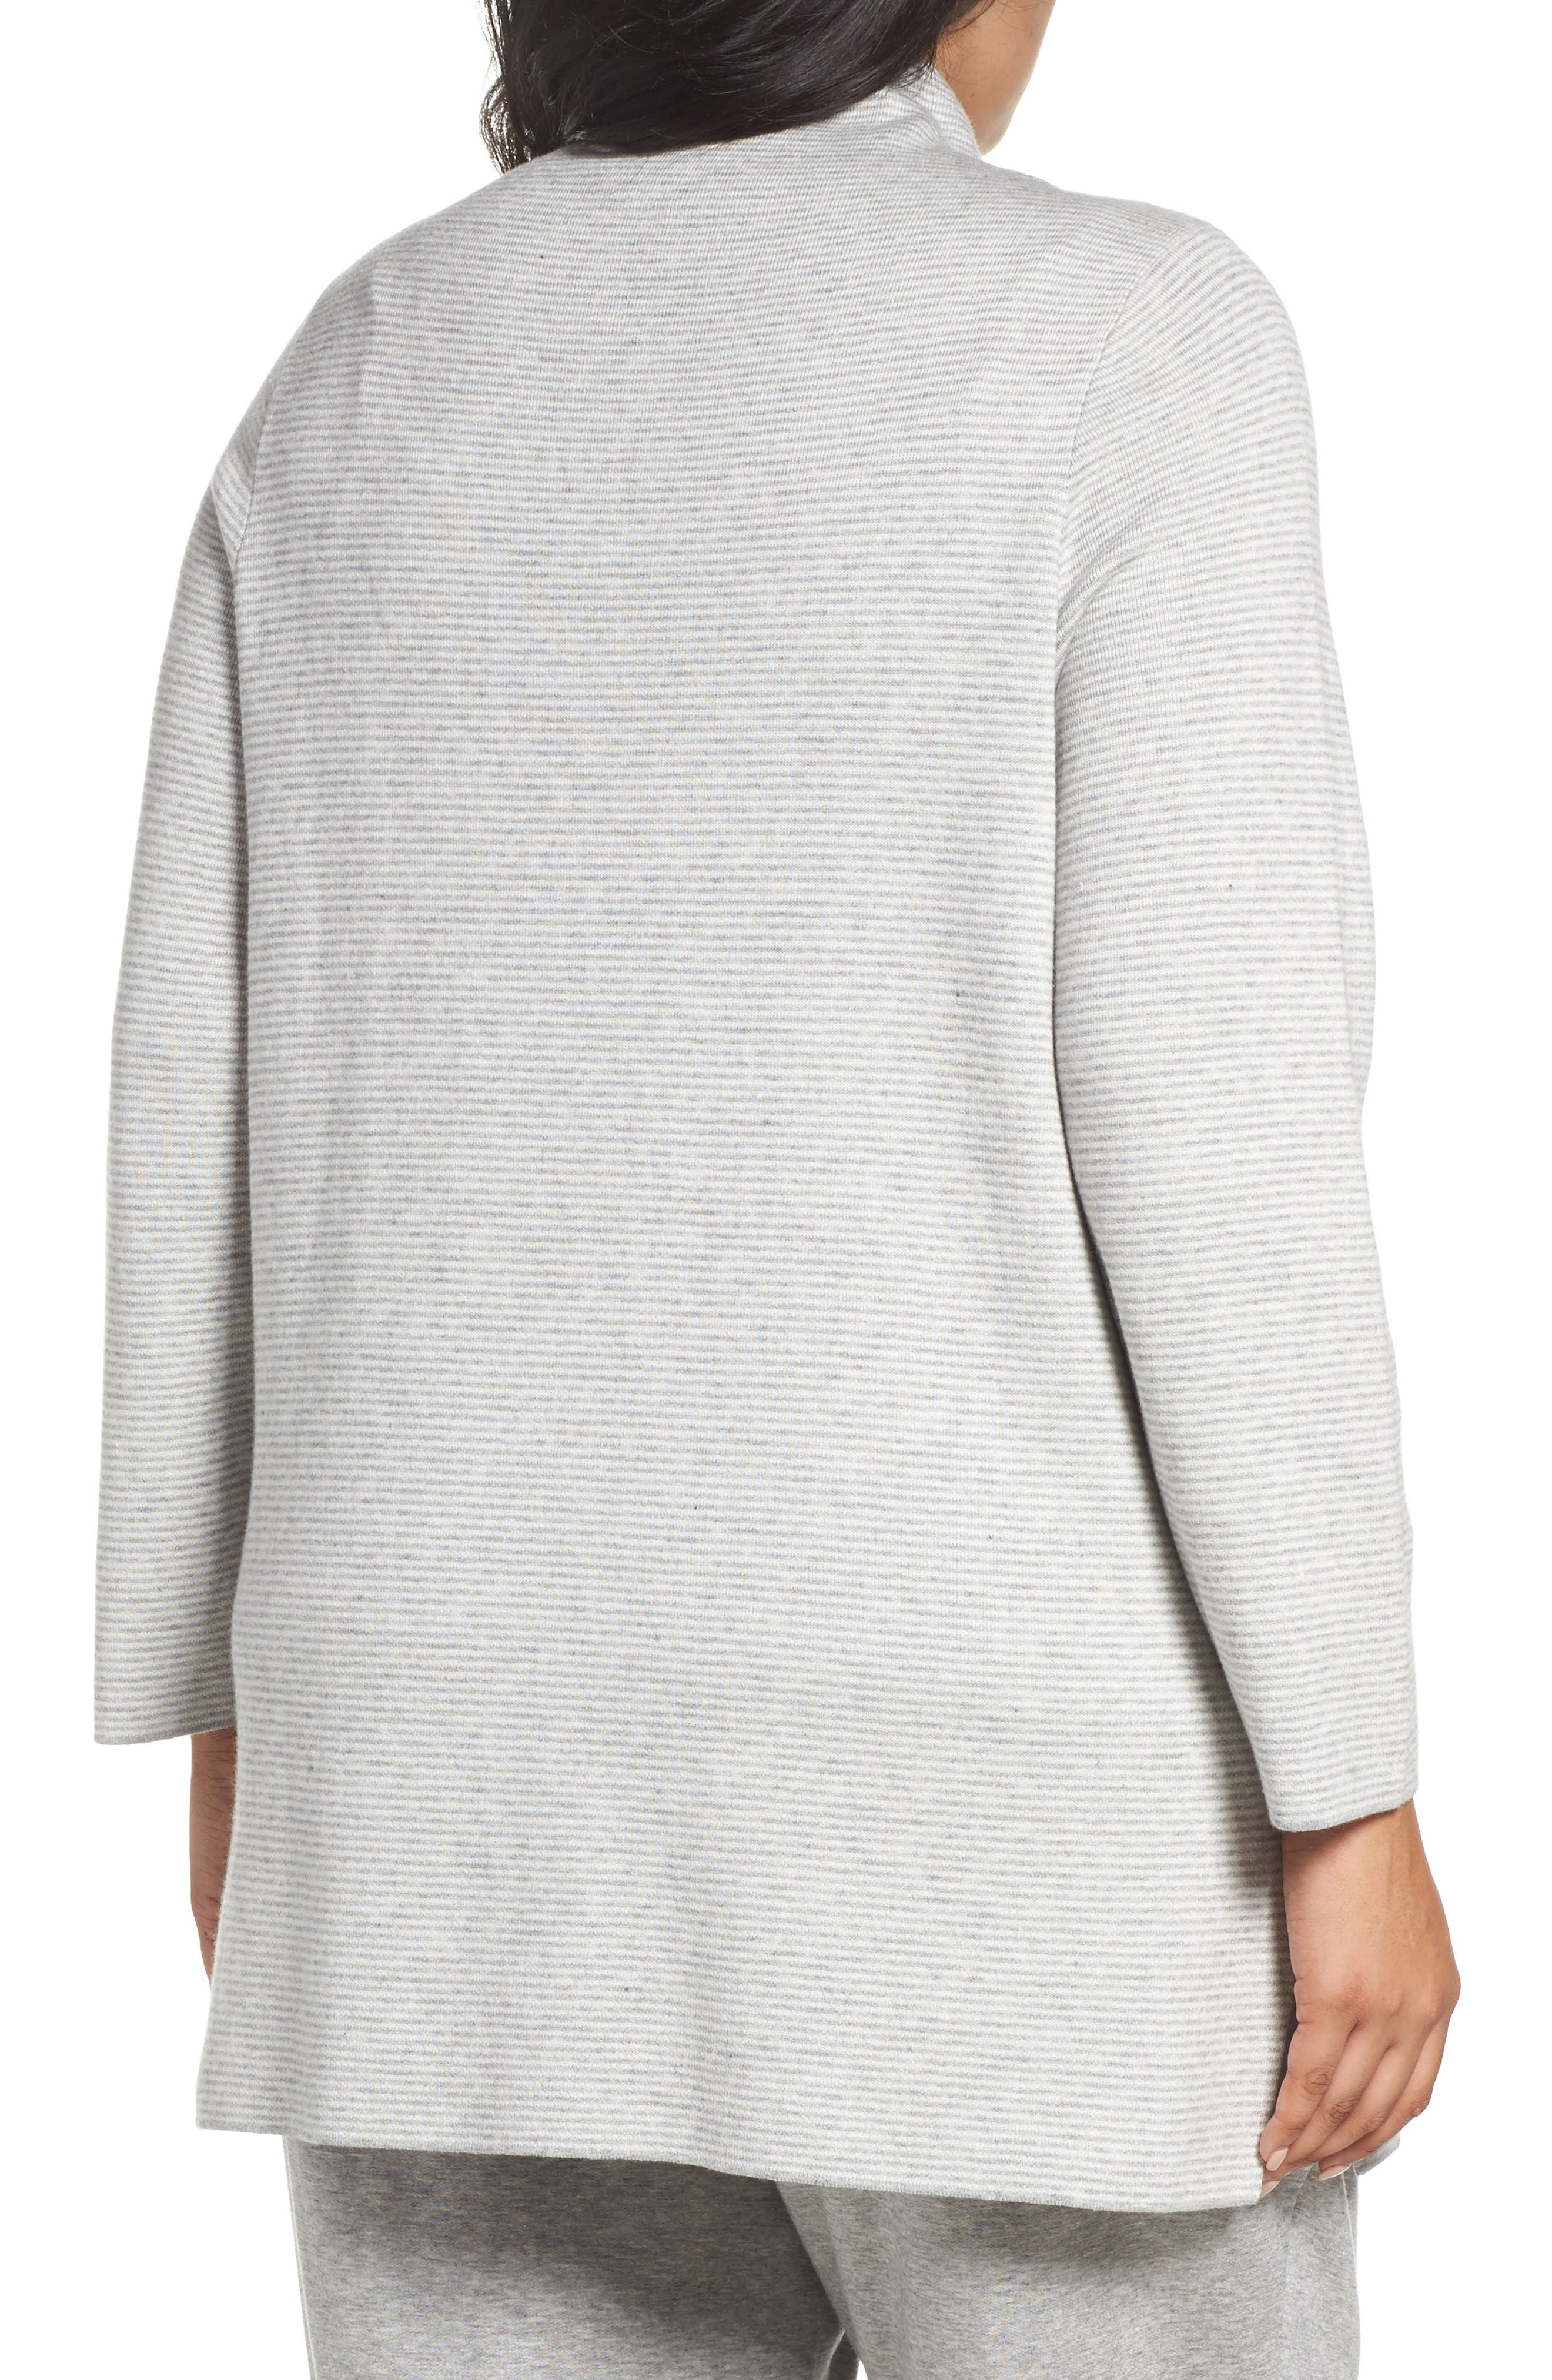 Alternate Image 2  - Eileen Fisher Reversible Funnel Neck Tunic Sweater (Plus Size)